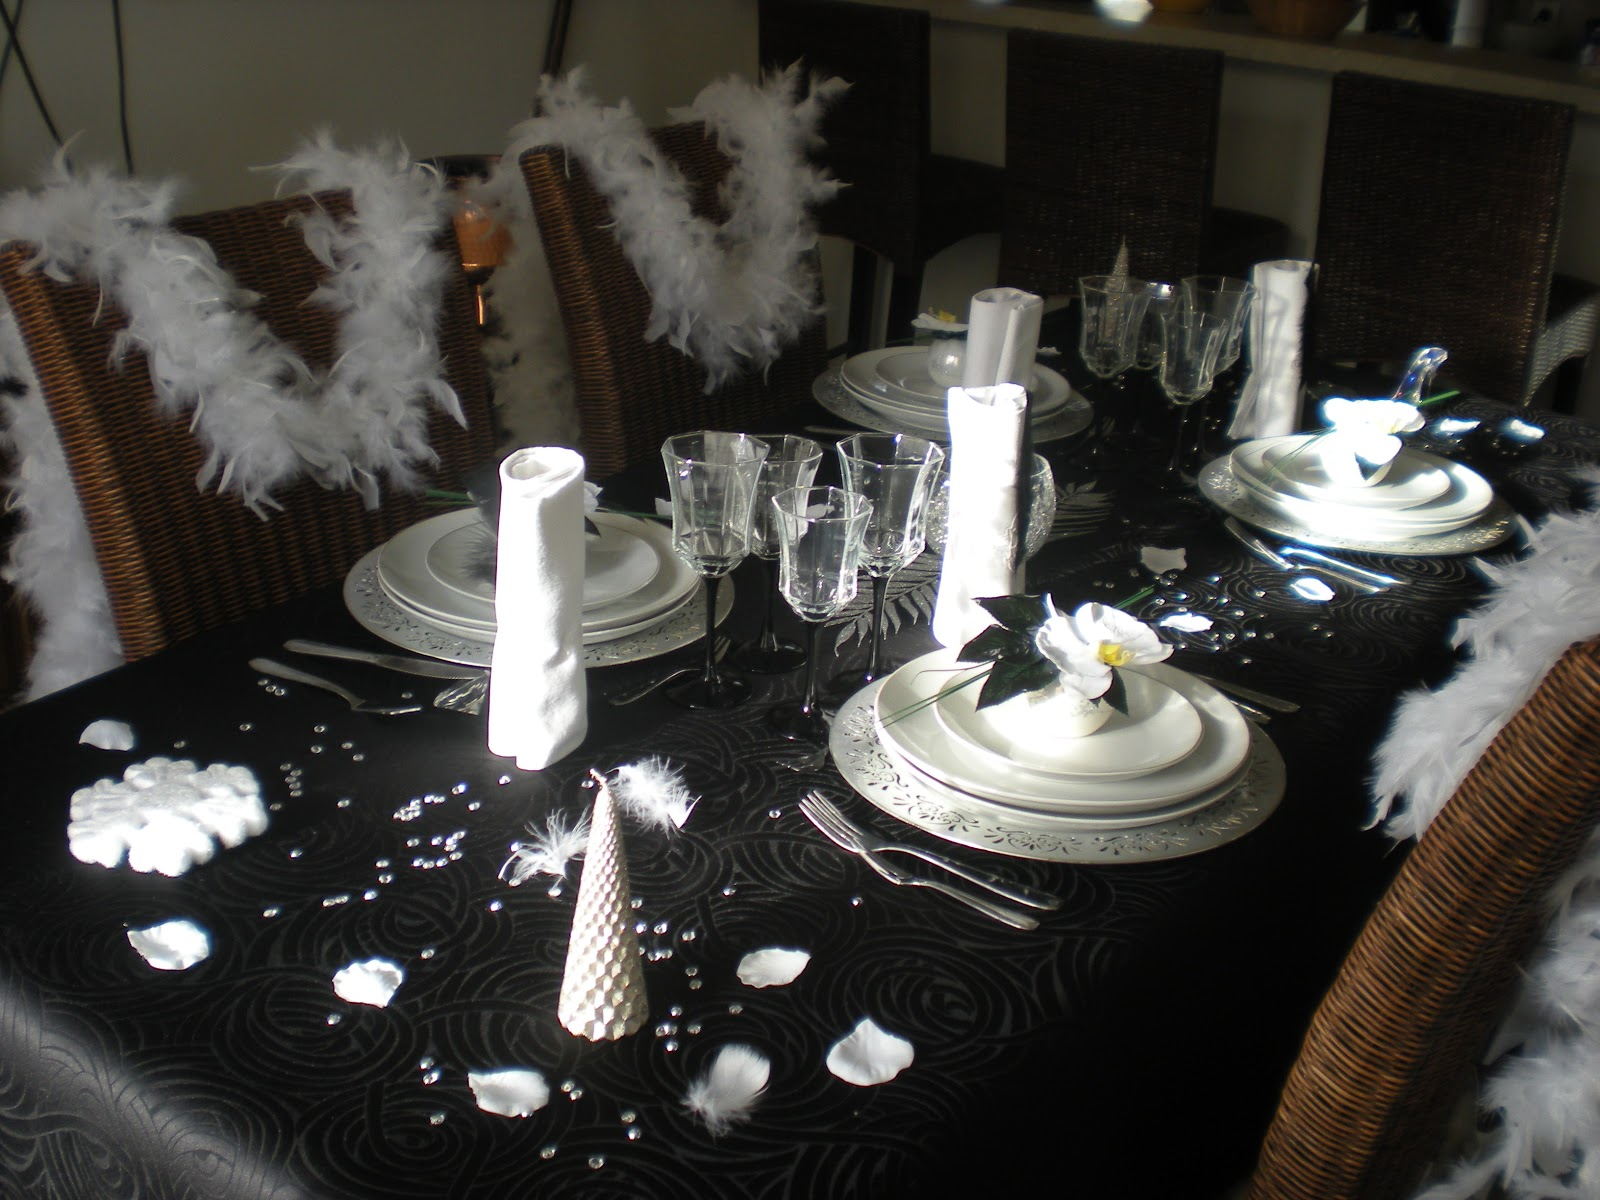 Deco salon noir blanc argente pr l vement d for Decoration 31 decembre